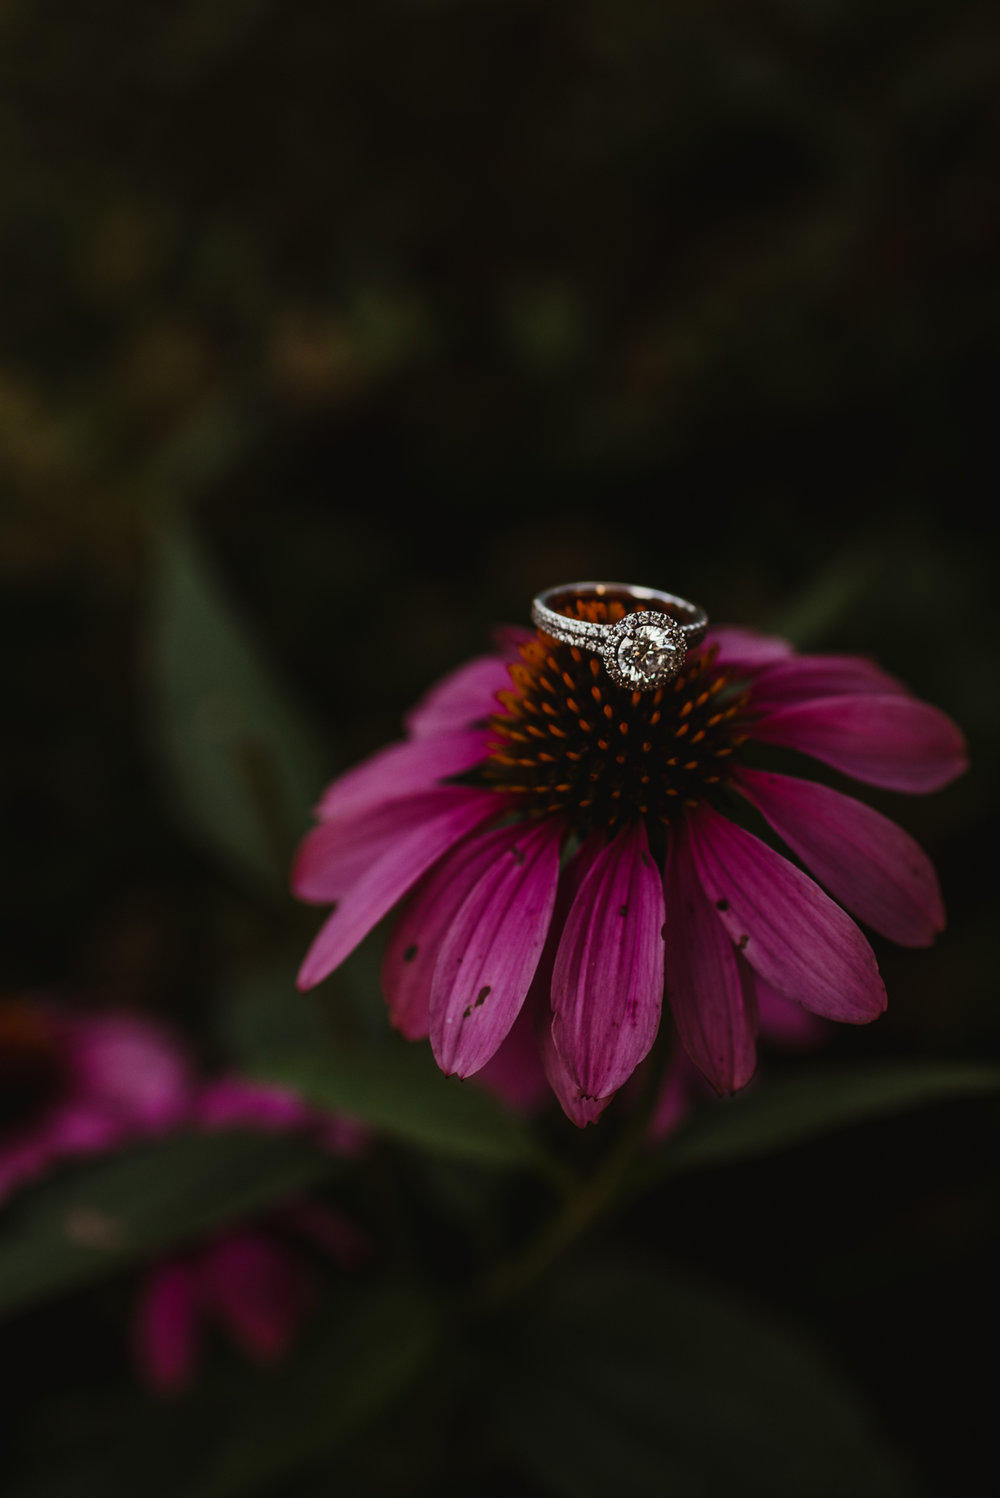 The engagement ring sits atop a bright pink daisy during their engagement session at Fred Fletcher Park in Raleigh, North Carolina with Rose Trail Images.